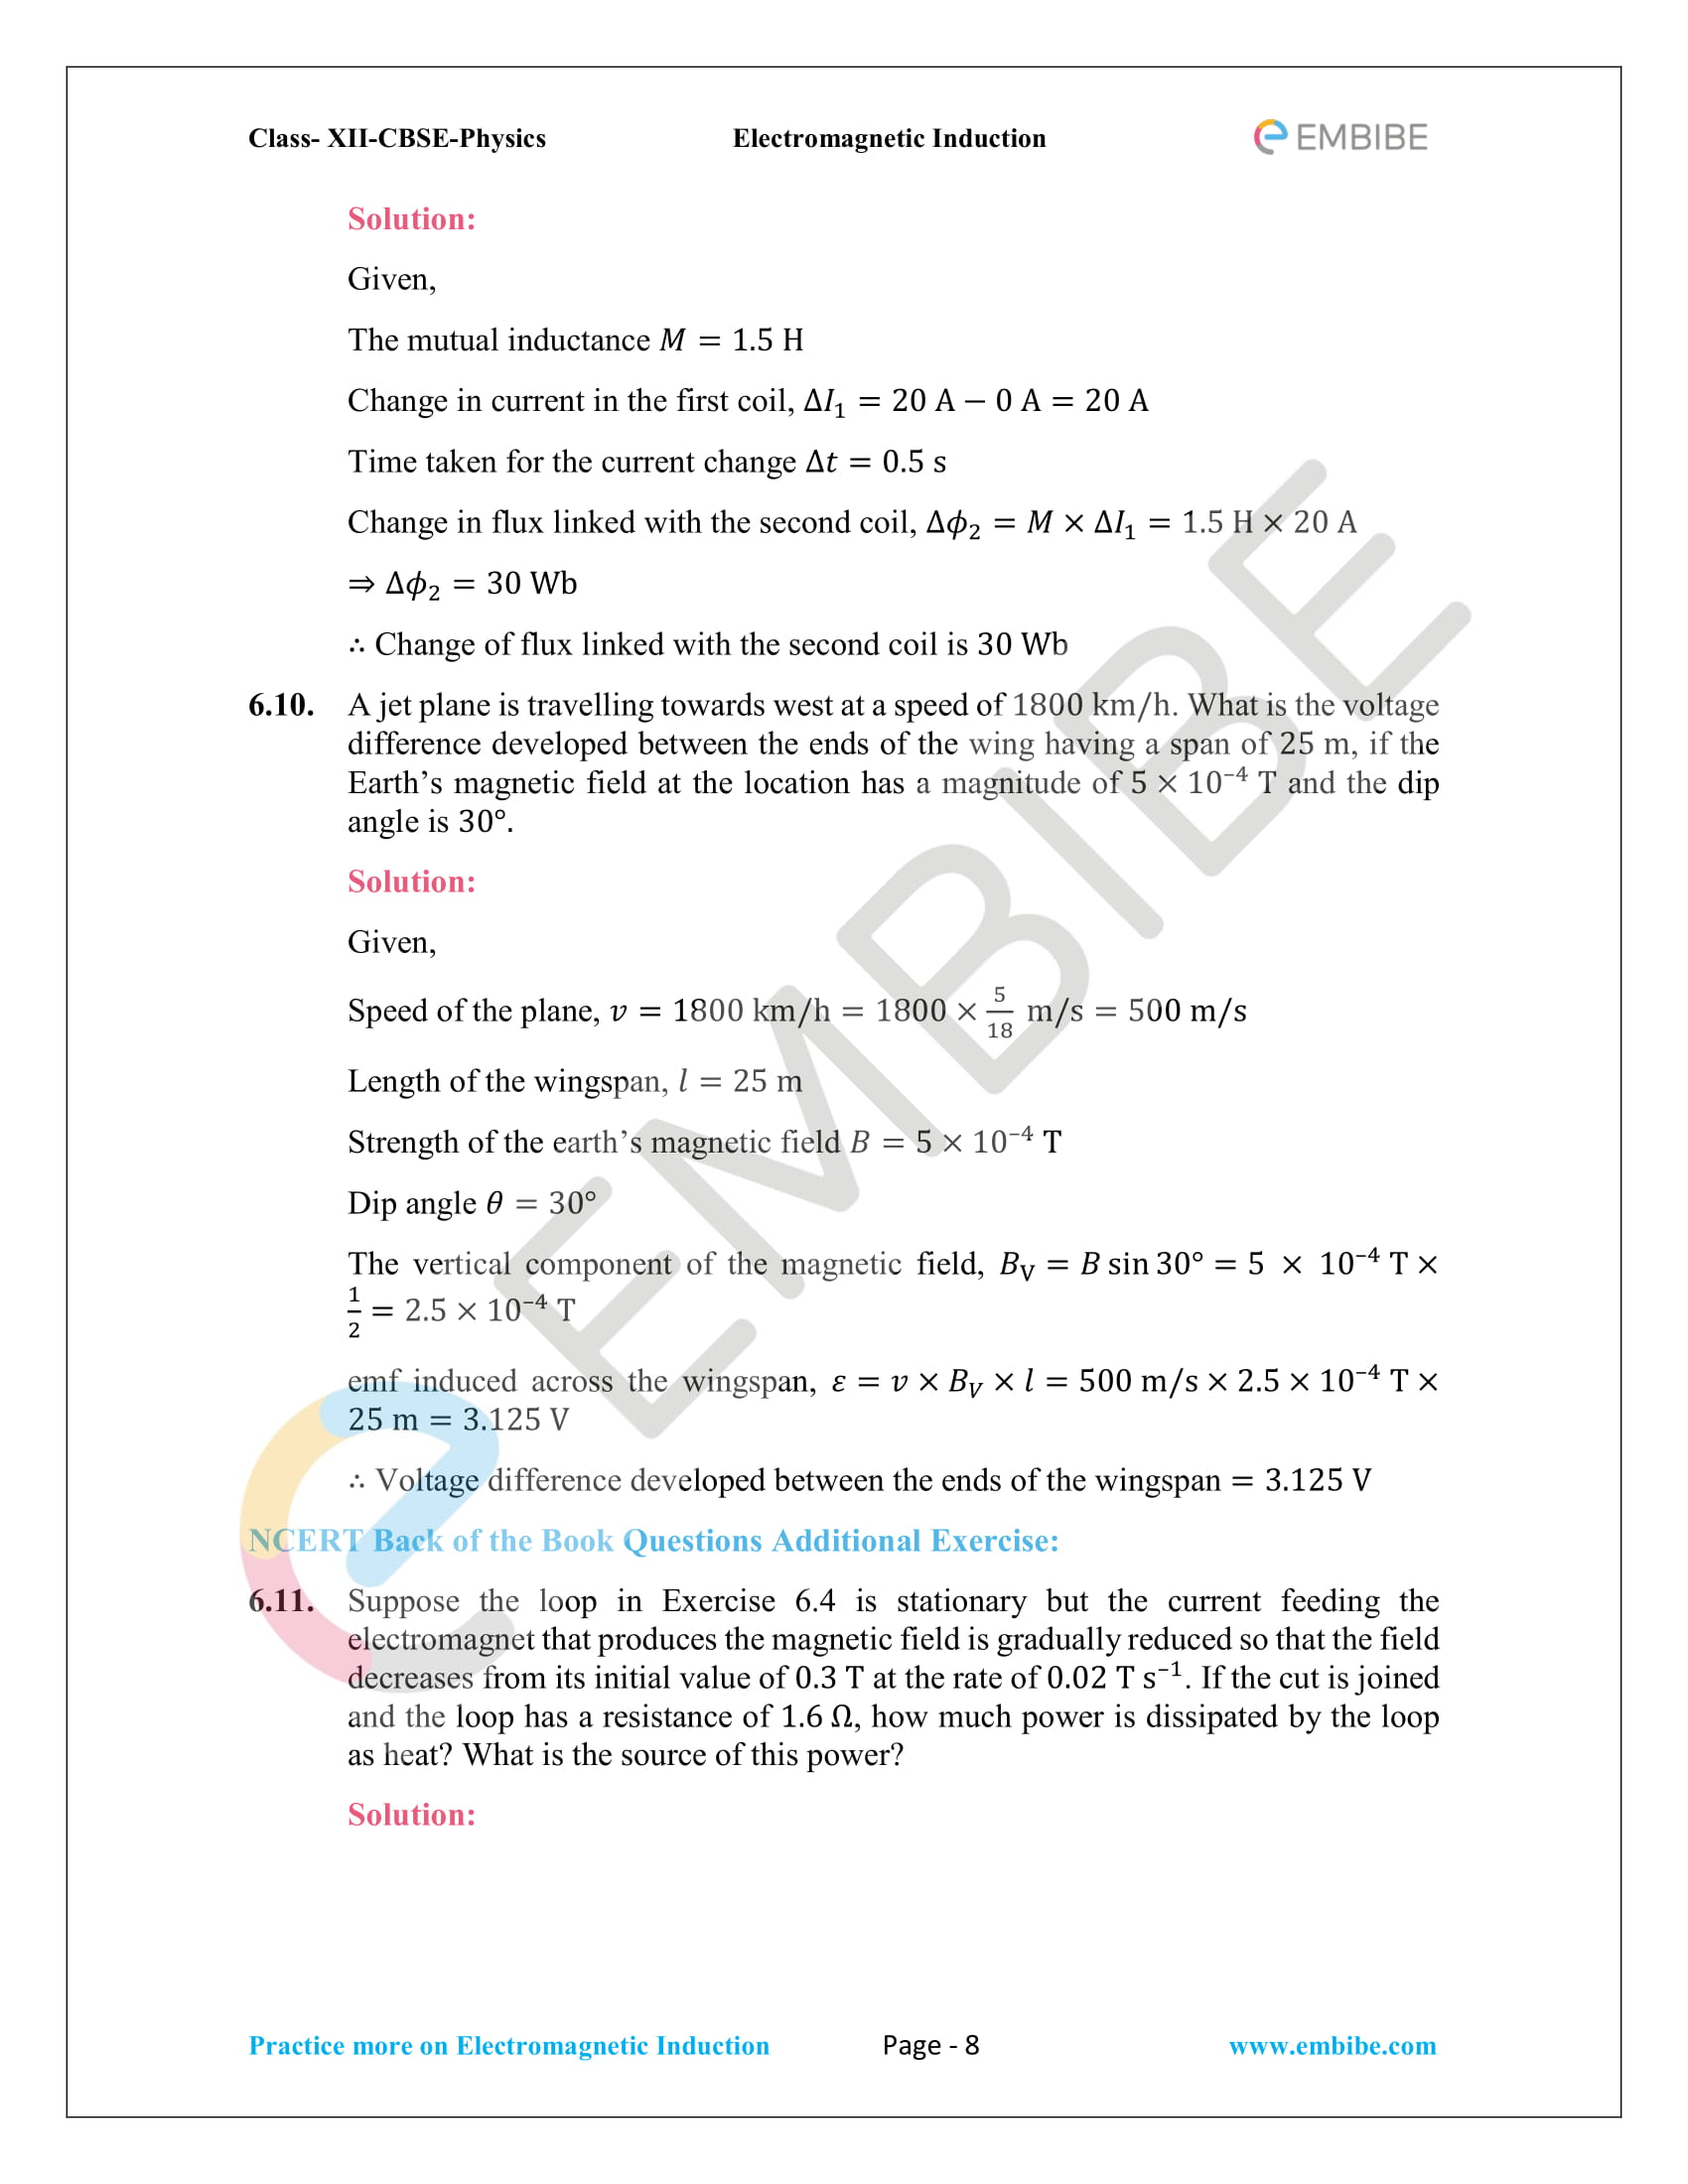 CBSE NCERT Solutions Class 12 Physics Chapter 6 PDF - Electromagnetic Induction - 8